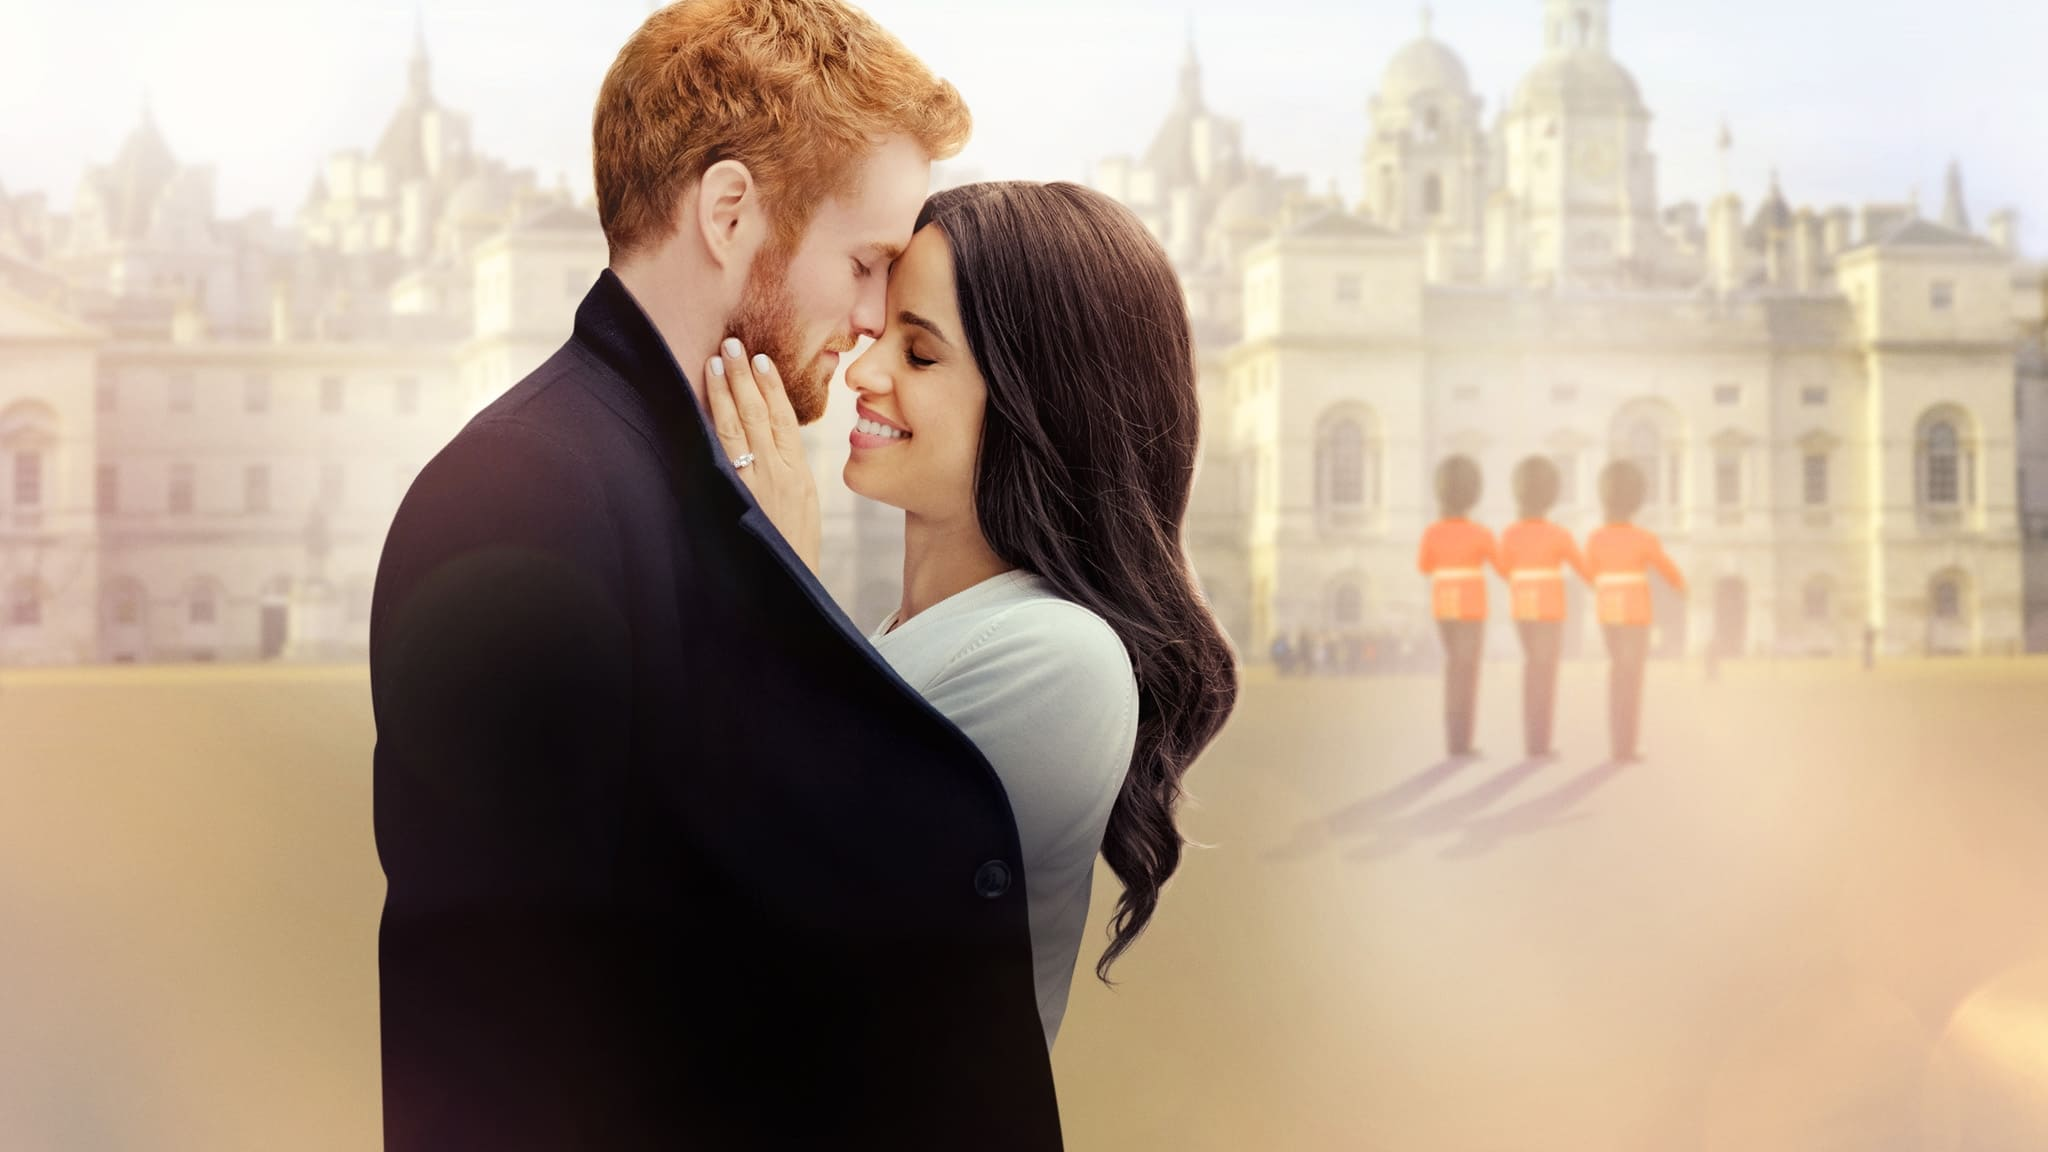 Quand harry rencontre meghan : romance royale en streaming. La datation.